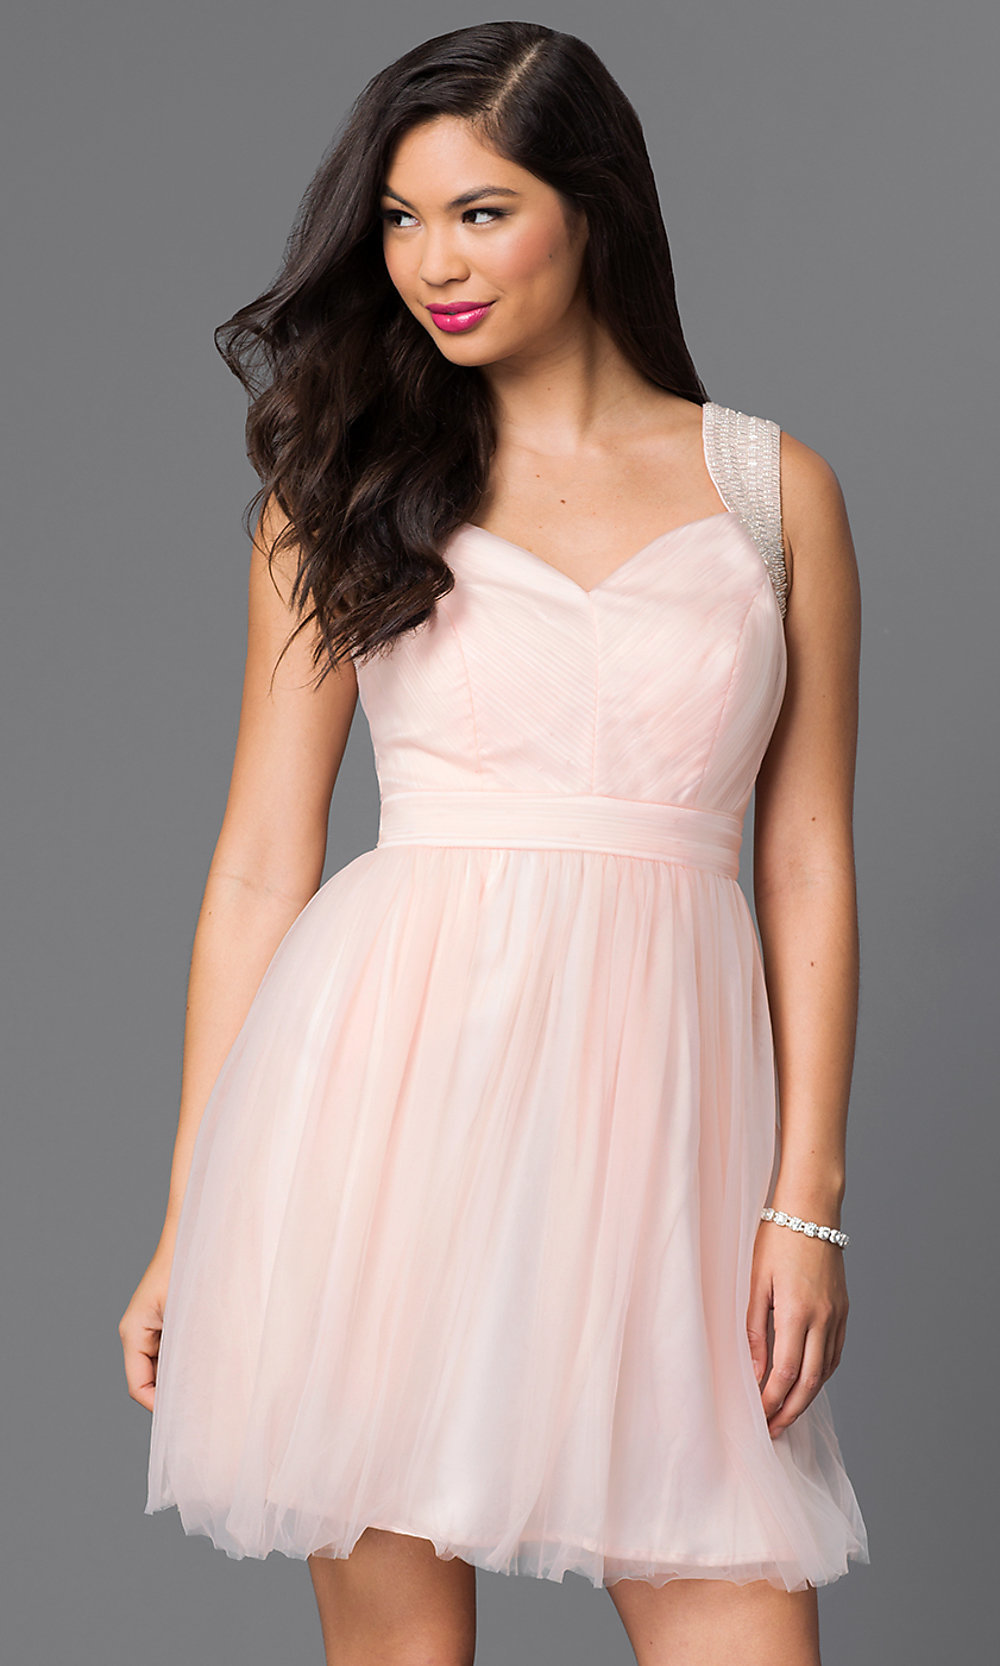 Cute Short Homecoming Dress With Sequins Promgirl